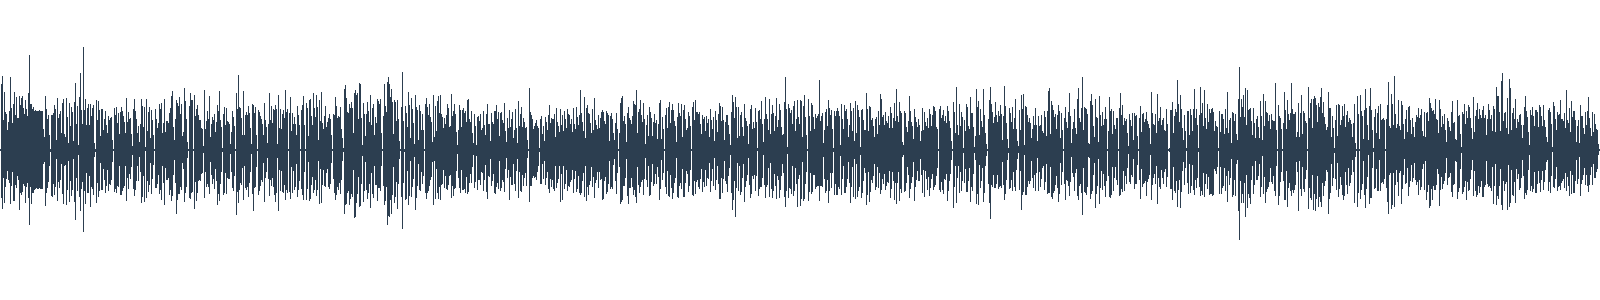 Historie Youtube 3. díl waveform